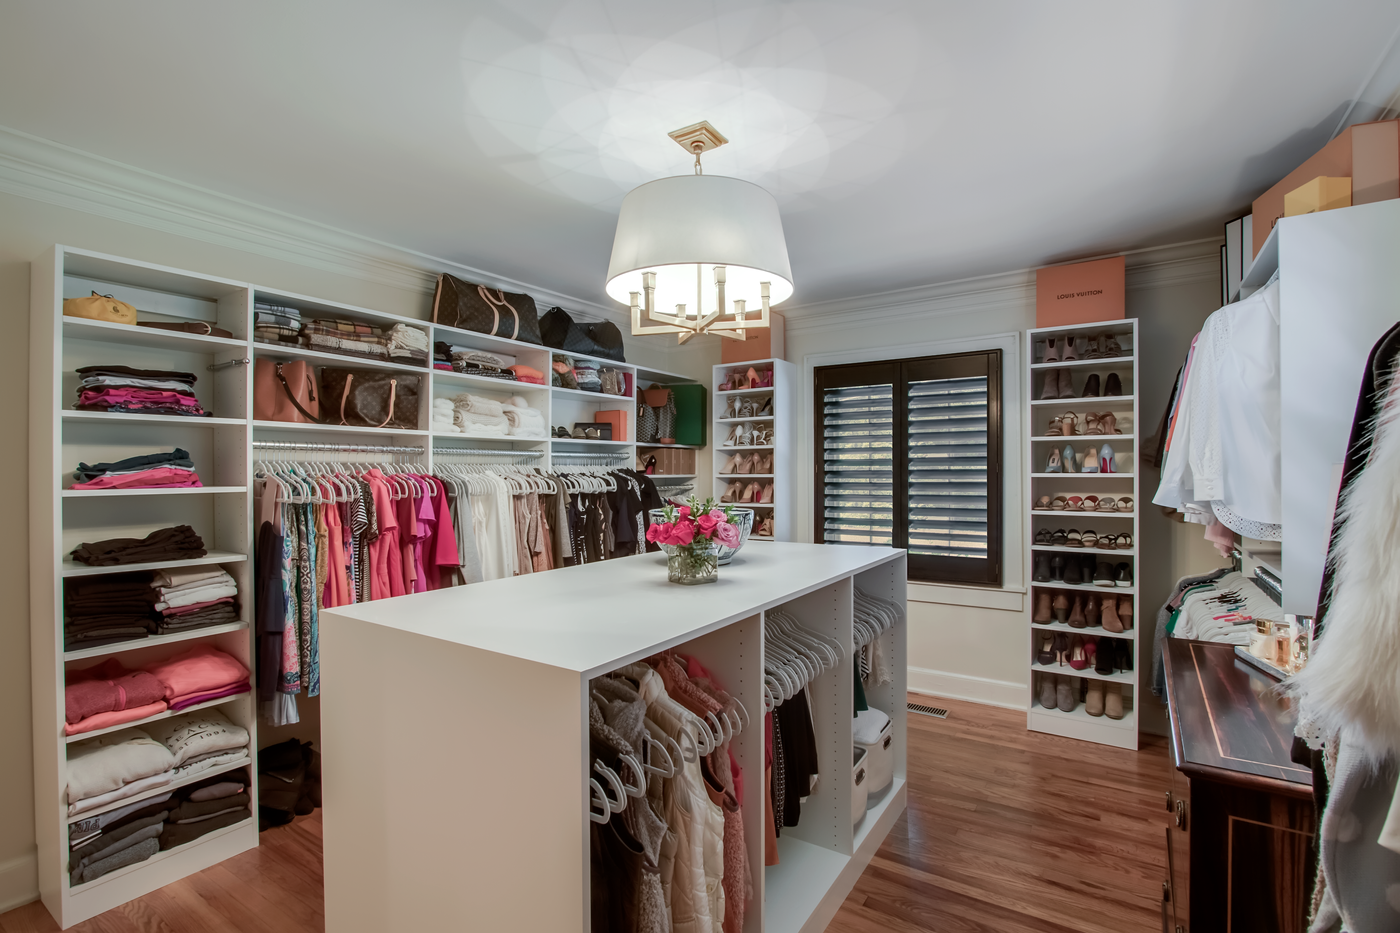 Glam Closet created in a room renovation from Closets by McKenry